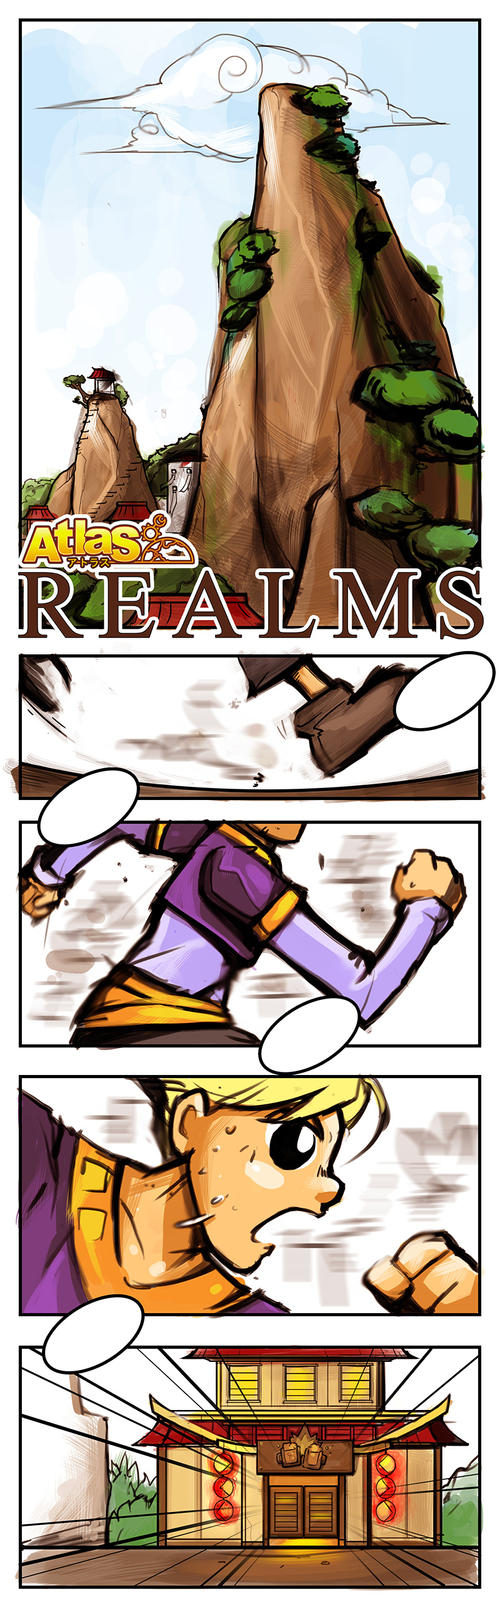 Realms Prelude on WebToons by smallguydoodle